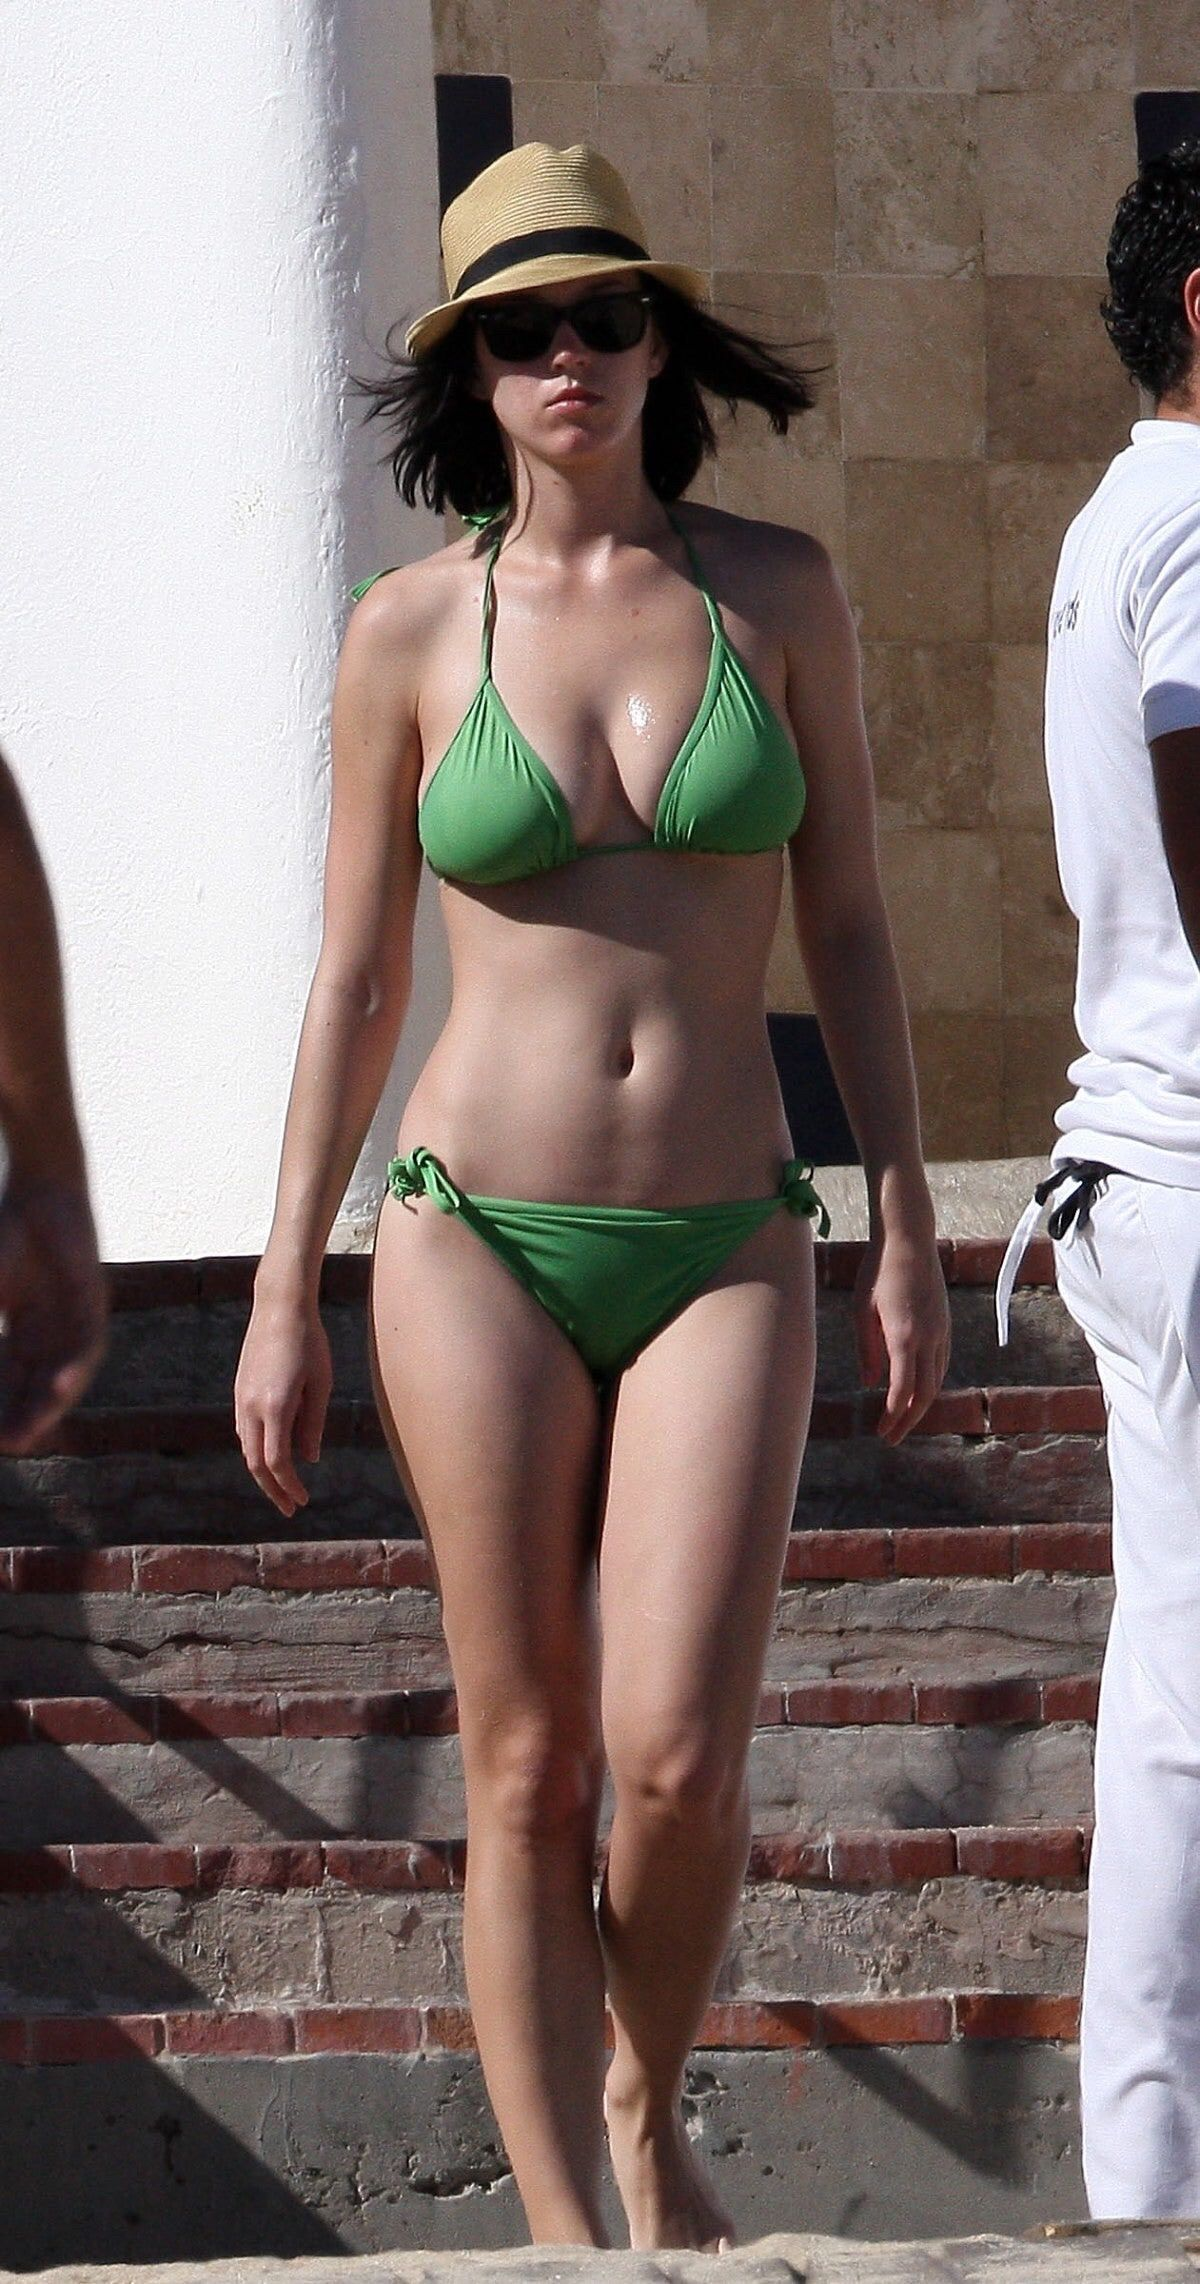 Katy Perry Confident In A Green Bikini Katy Perry Bikini Katy Perry Photos Katy Perry